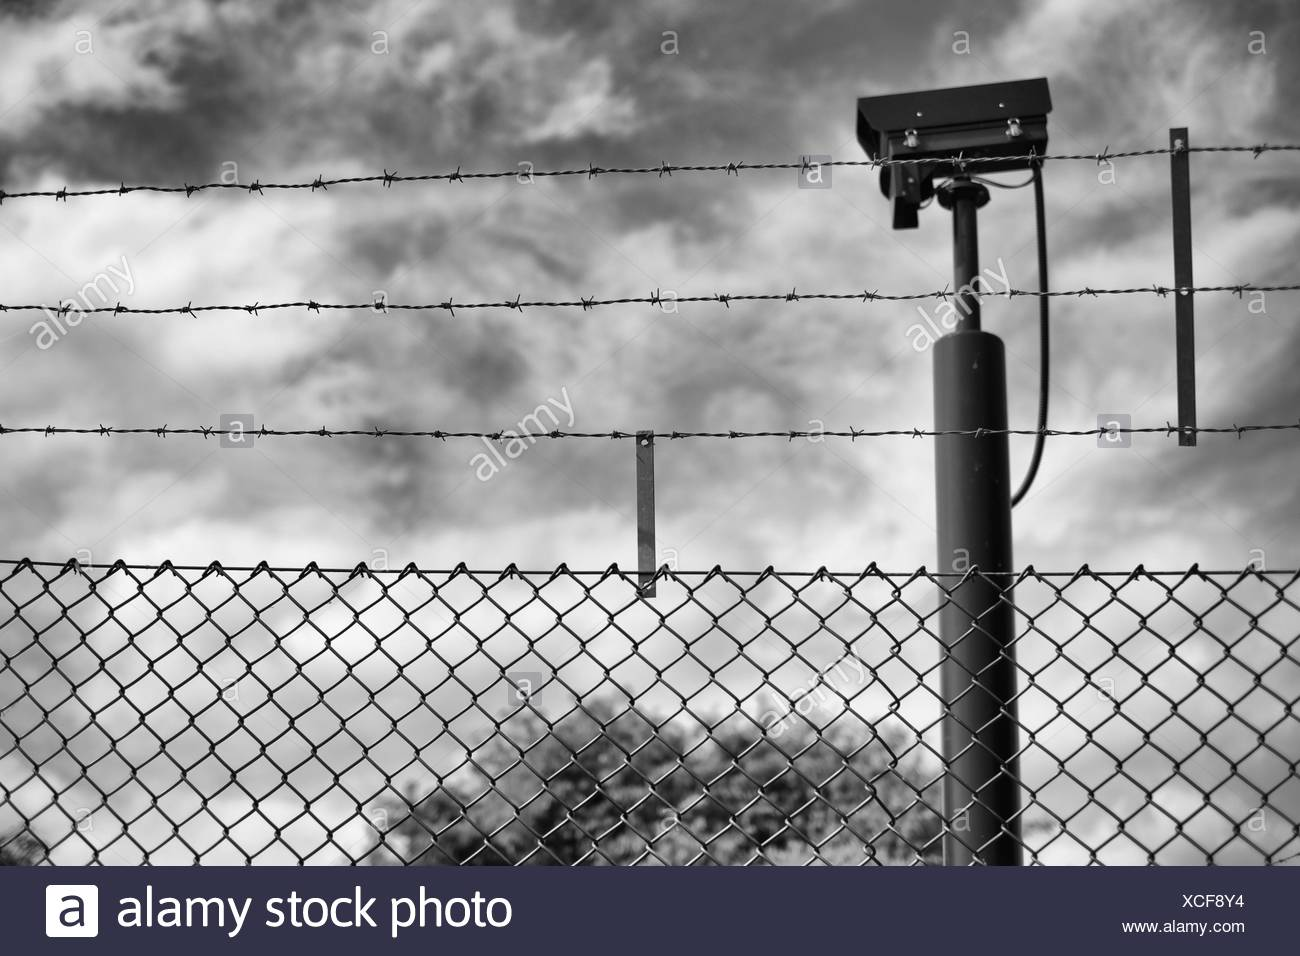 Barbed Wire Fence And Surveillance Camera - Stock Image